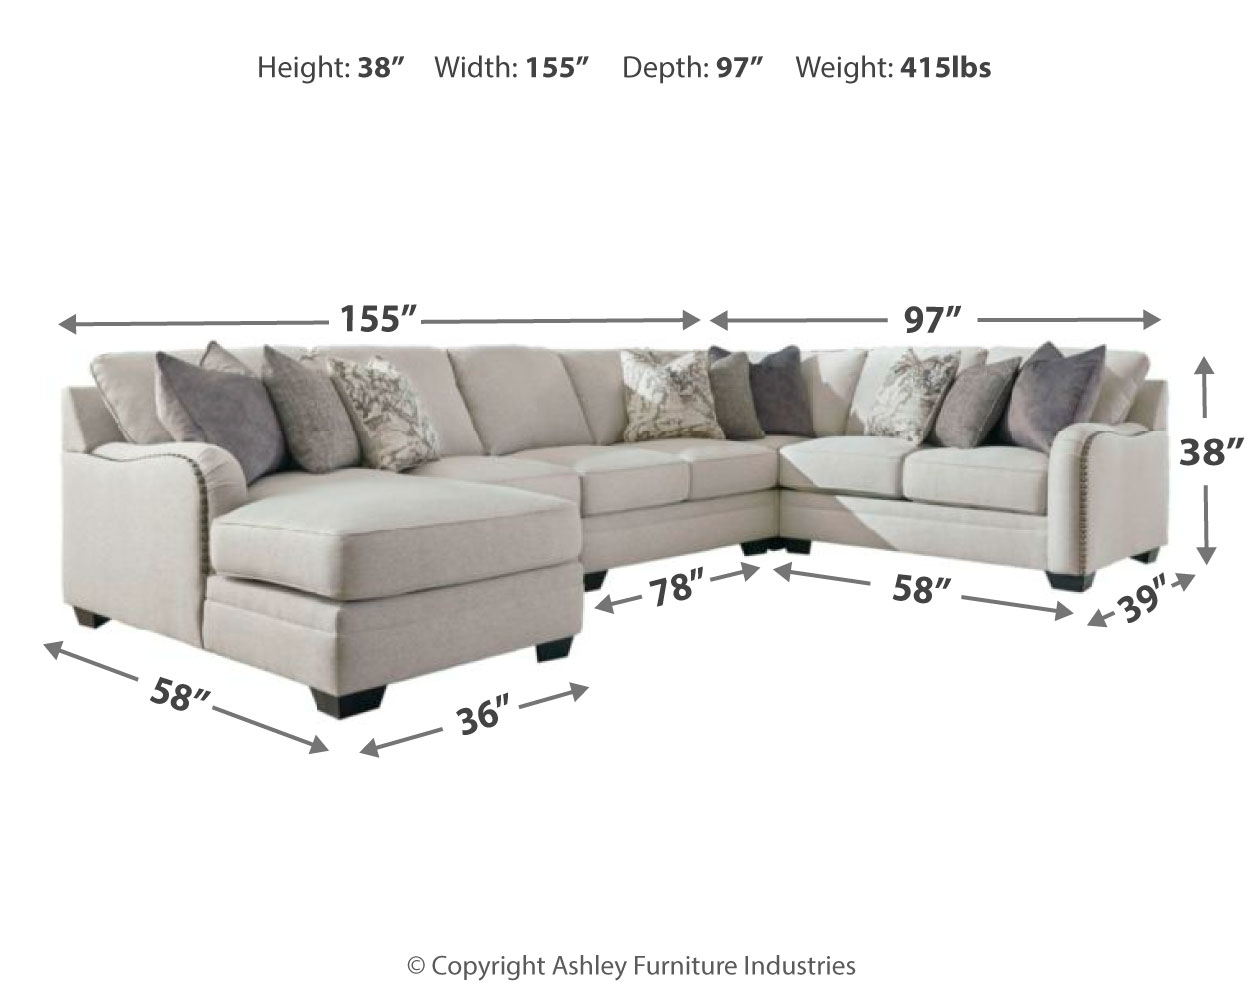 Dellara 5 Piece Sectional With Chaise By Benchcraft 32101s7 Wright Furniture Flooring